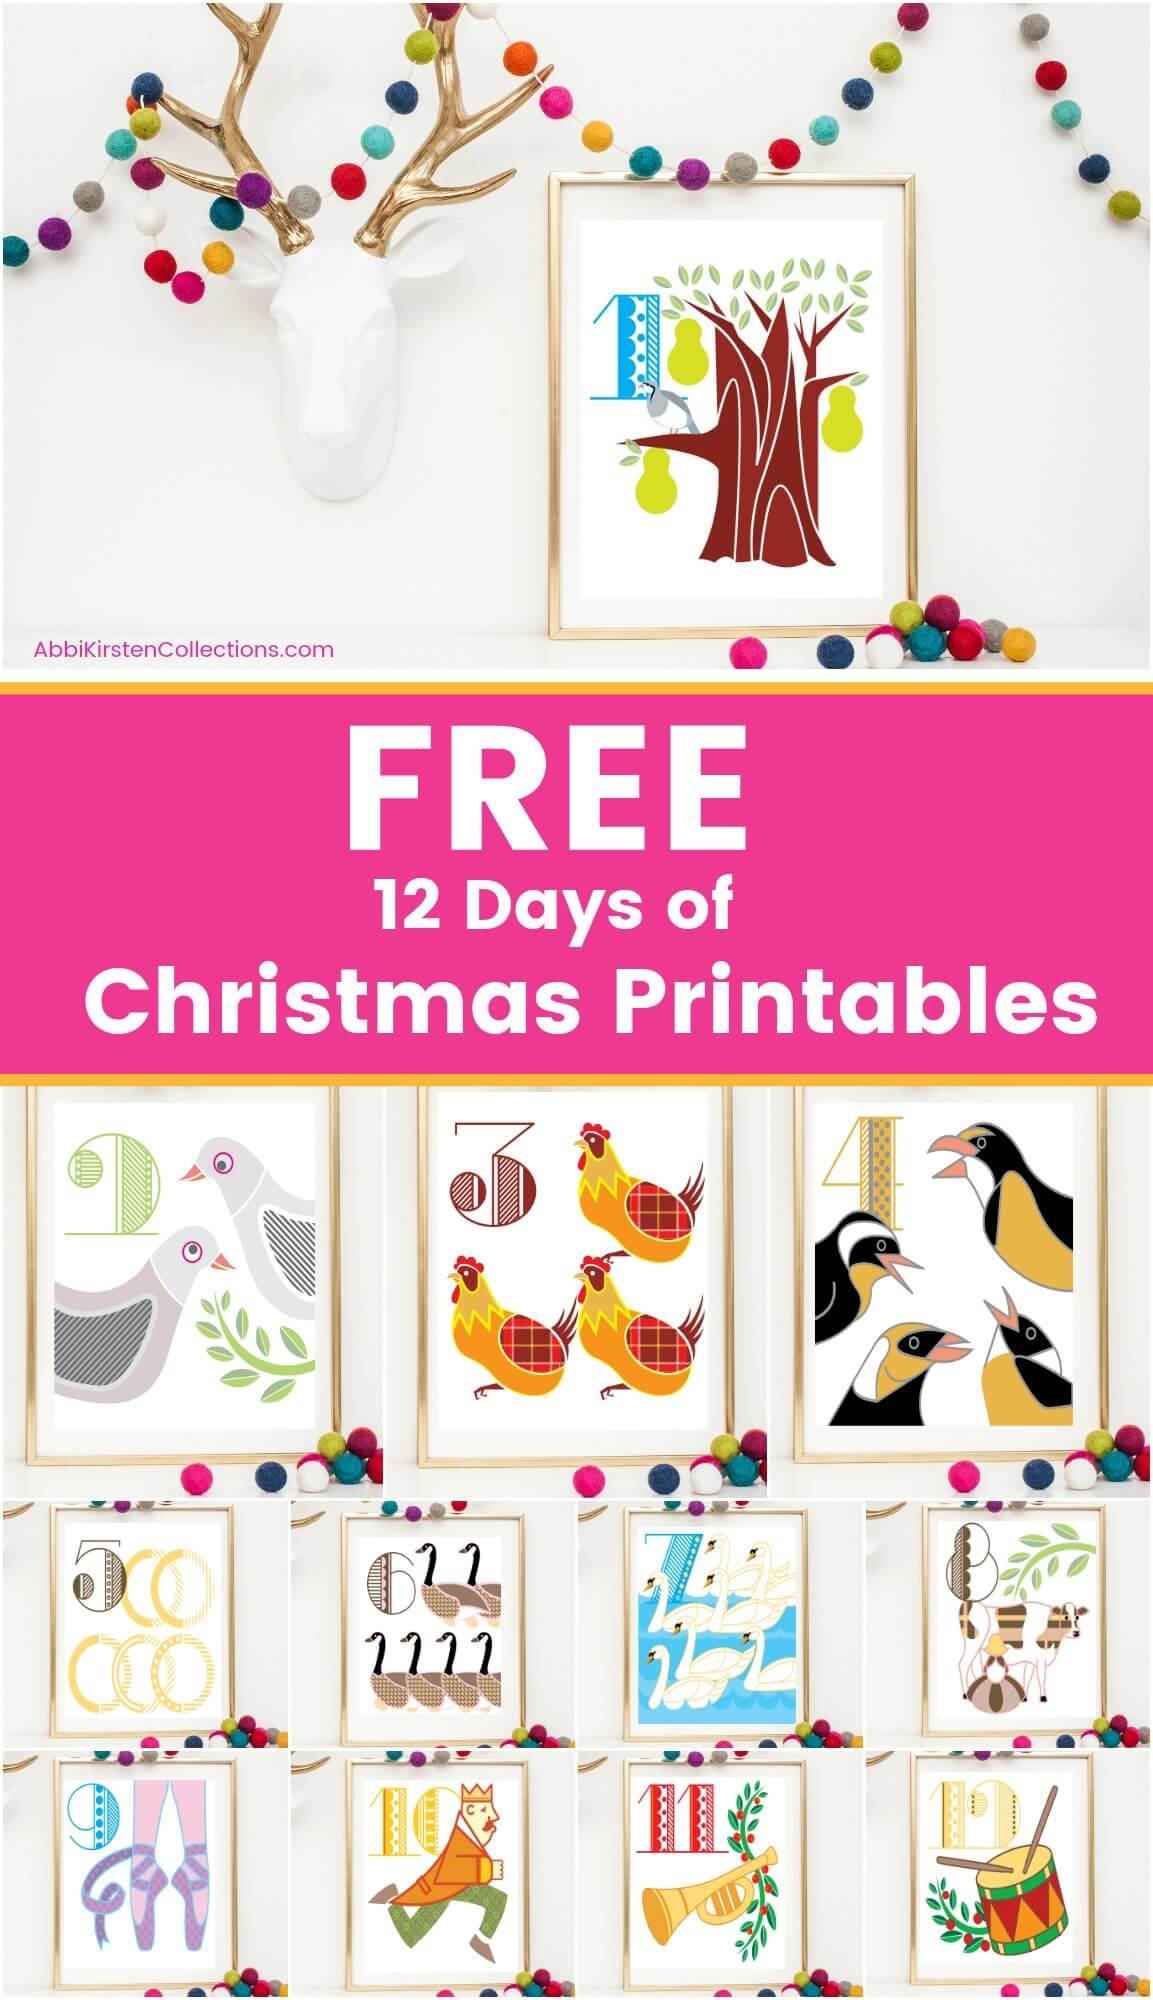 graphic relating to 12 Days of Christmas Images Printable identified as 12 Times of Xmas Printables: No cost Xmas Printable